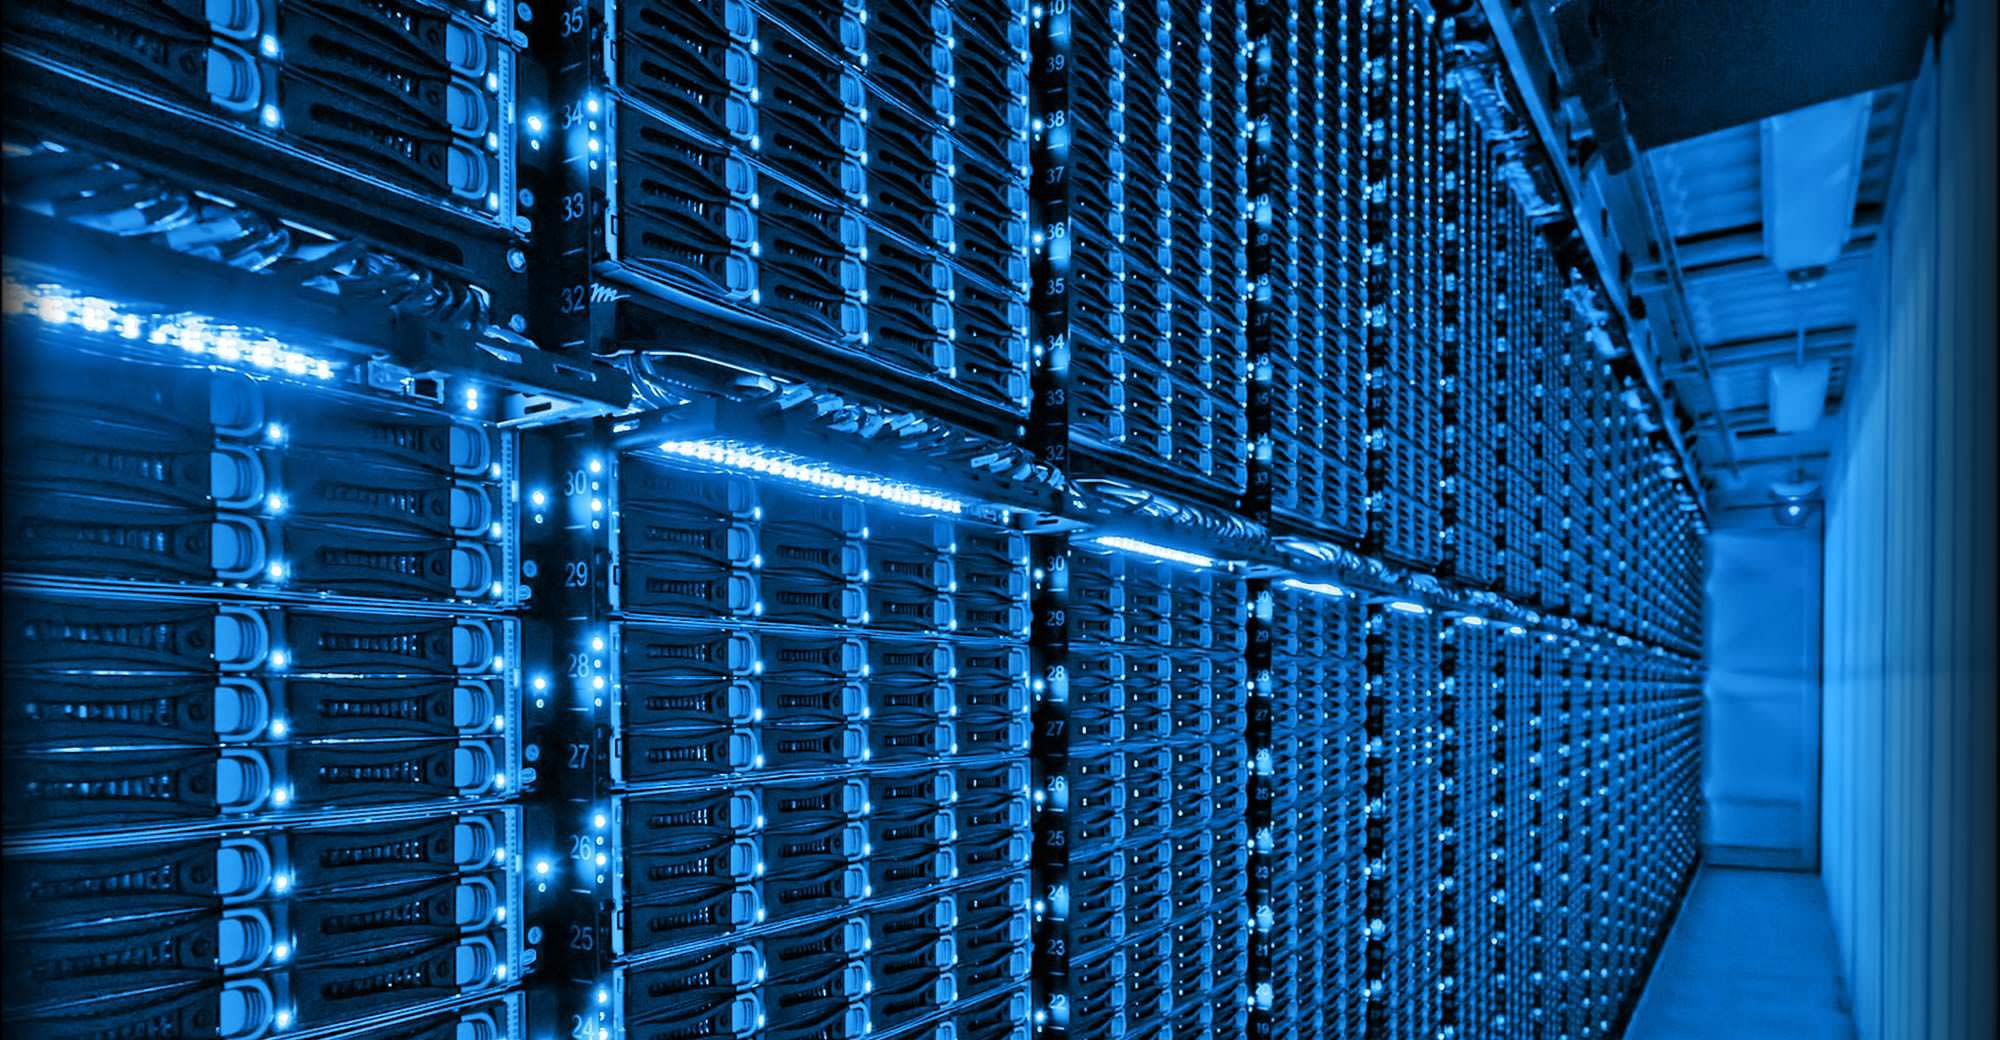 Can racks of cloud servers help save the world? Source: Microsoft